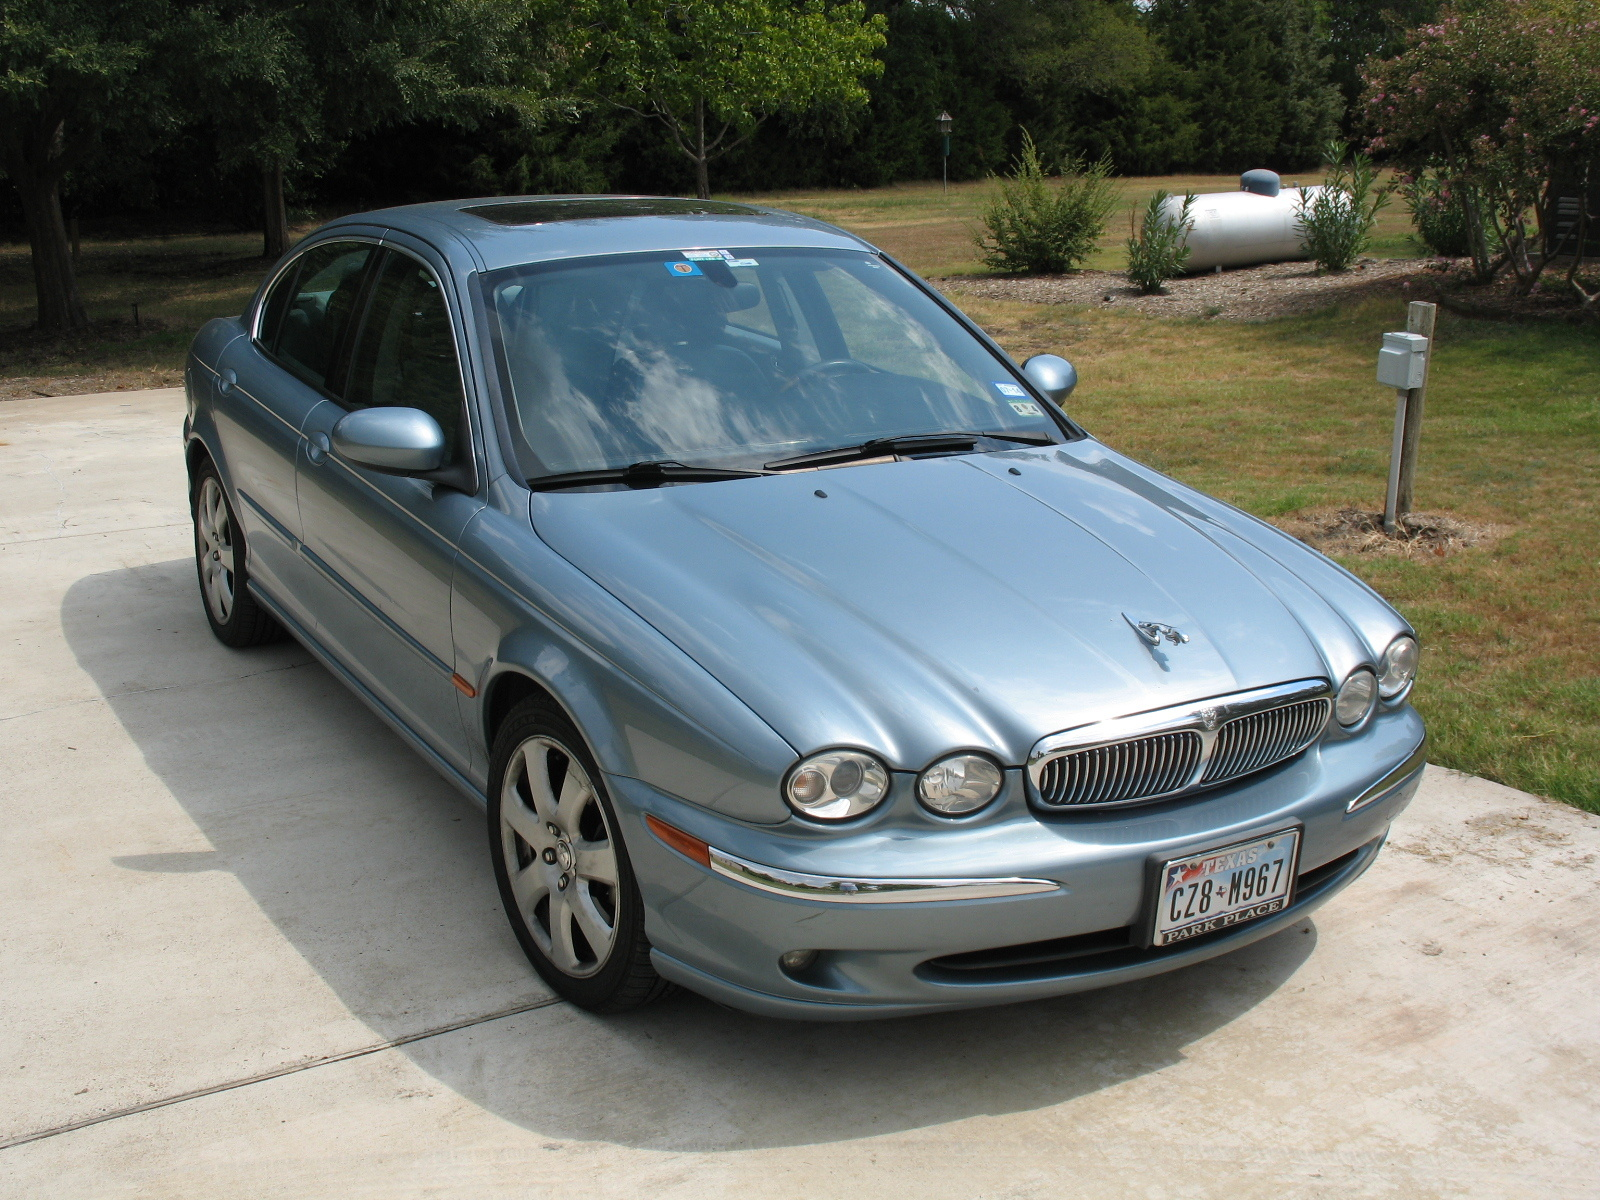 2004 Jaguar X-type - Pictures